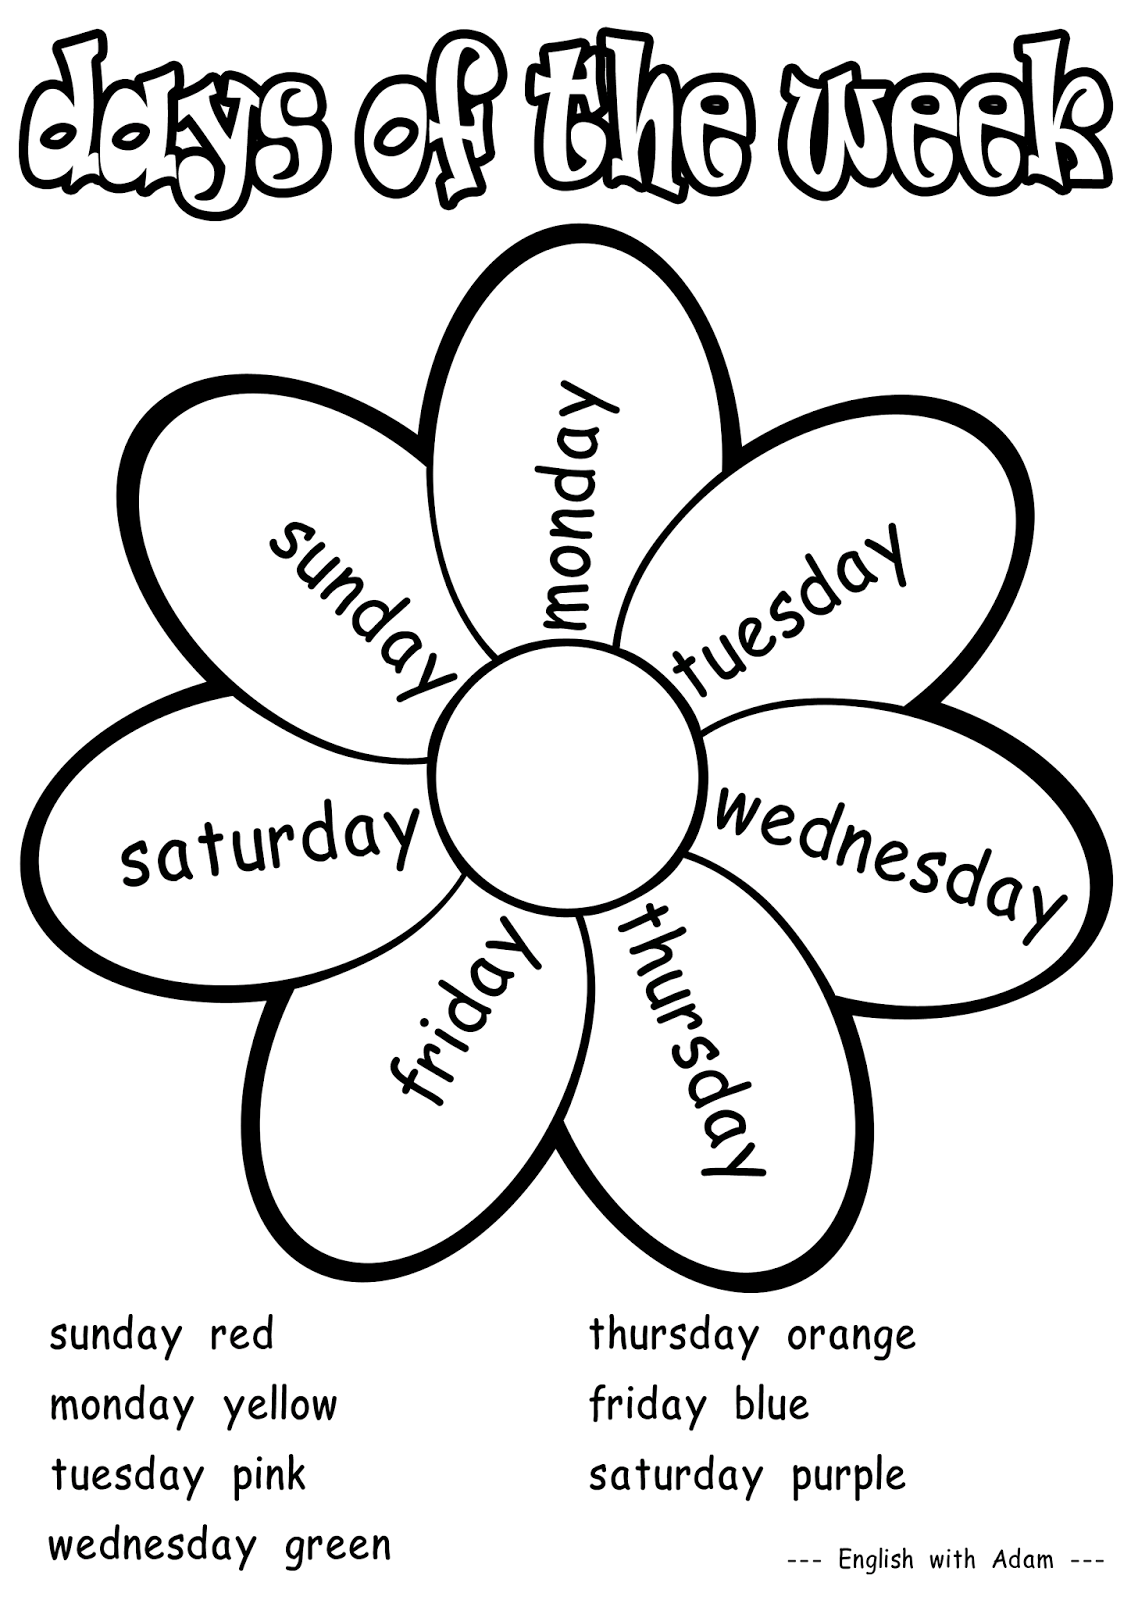 Free Days Of The Week Printable Coloring Pages Download